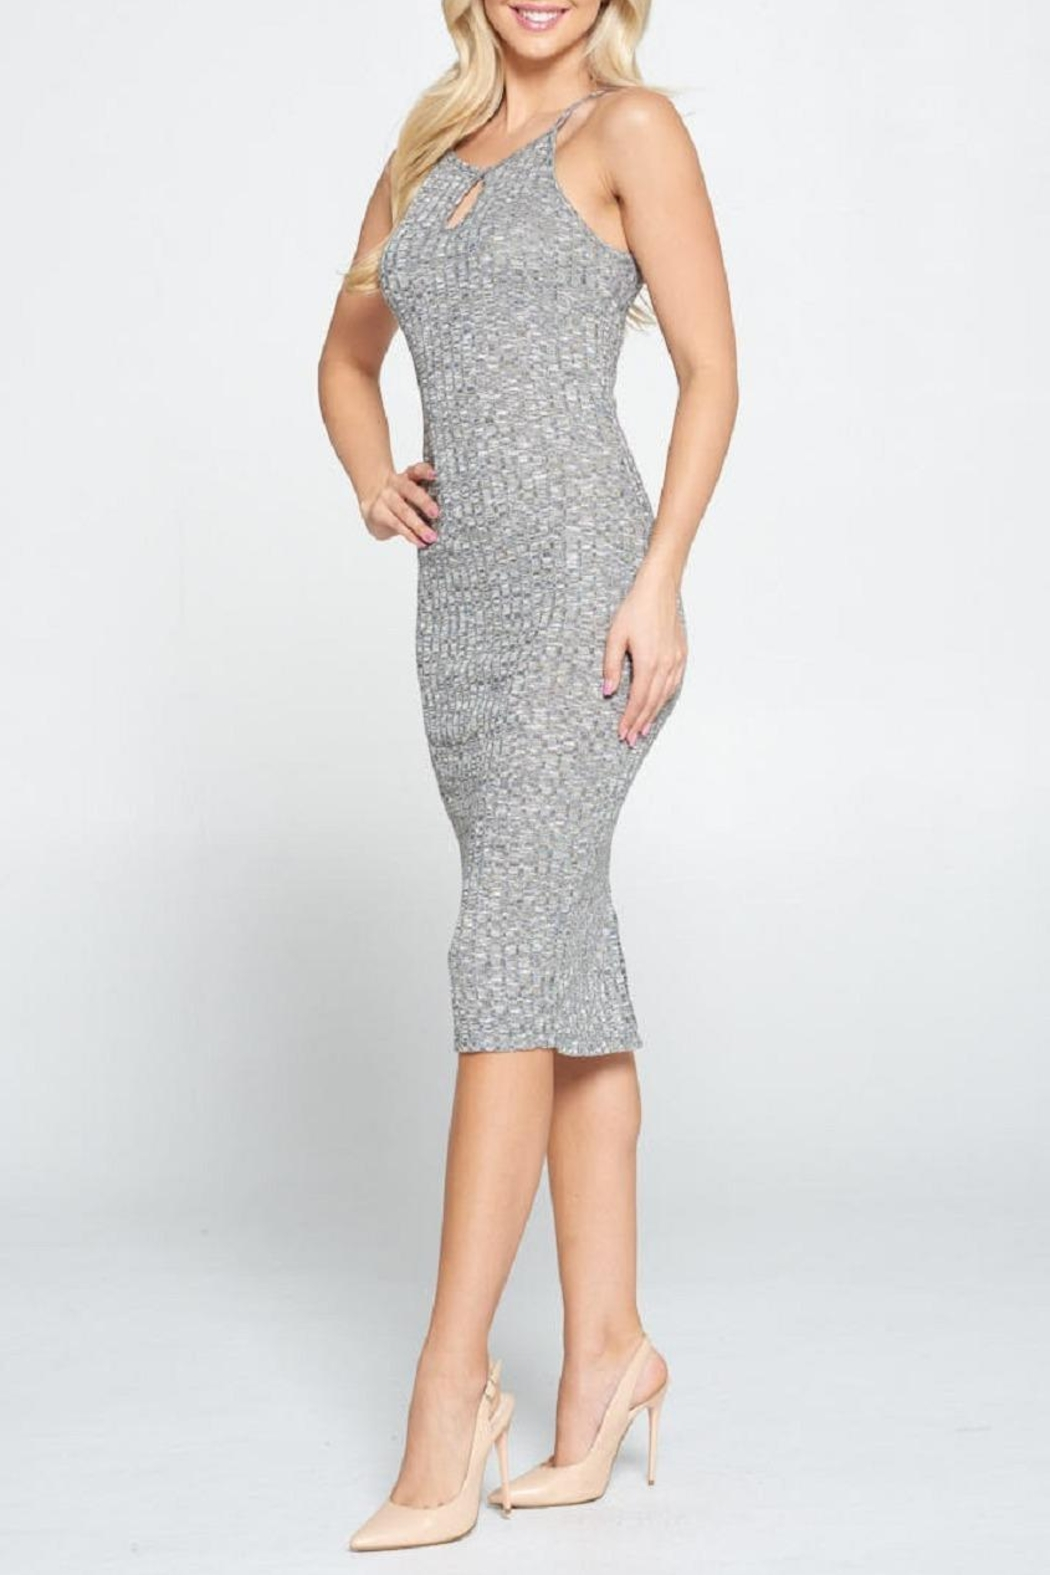 DNA Couture Ribbed Key-Hole Dress - Side Cropped Image